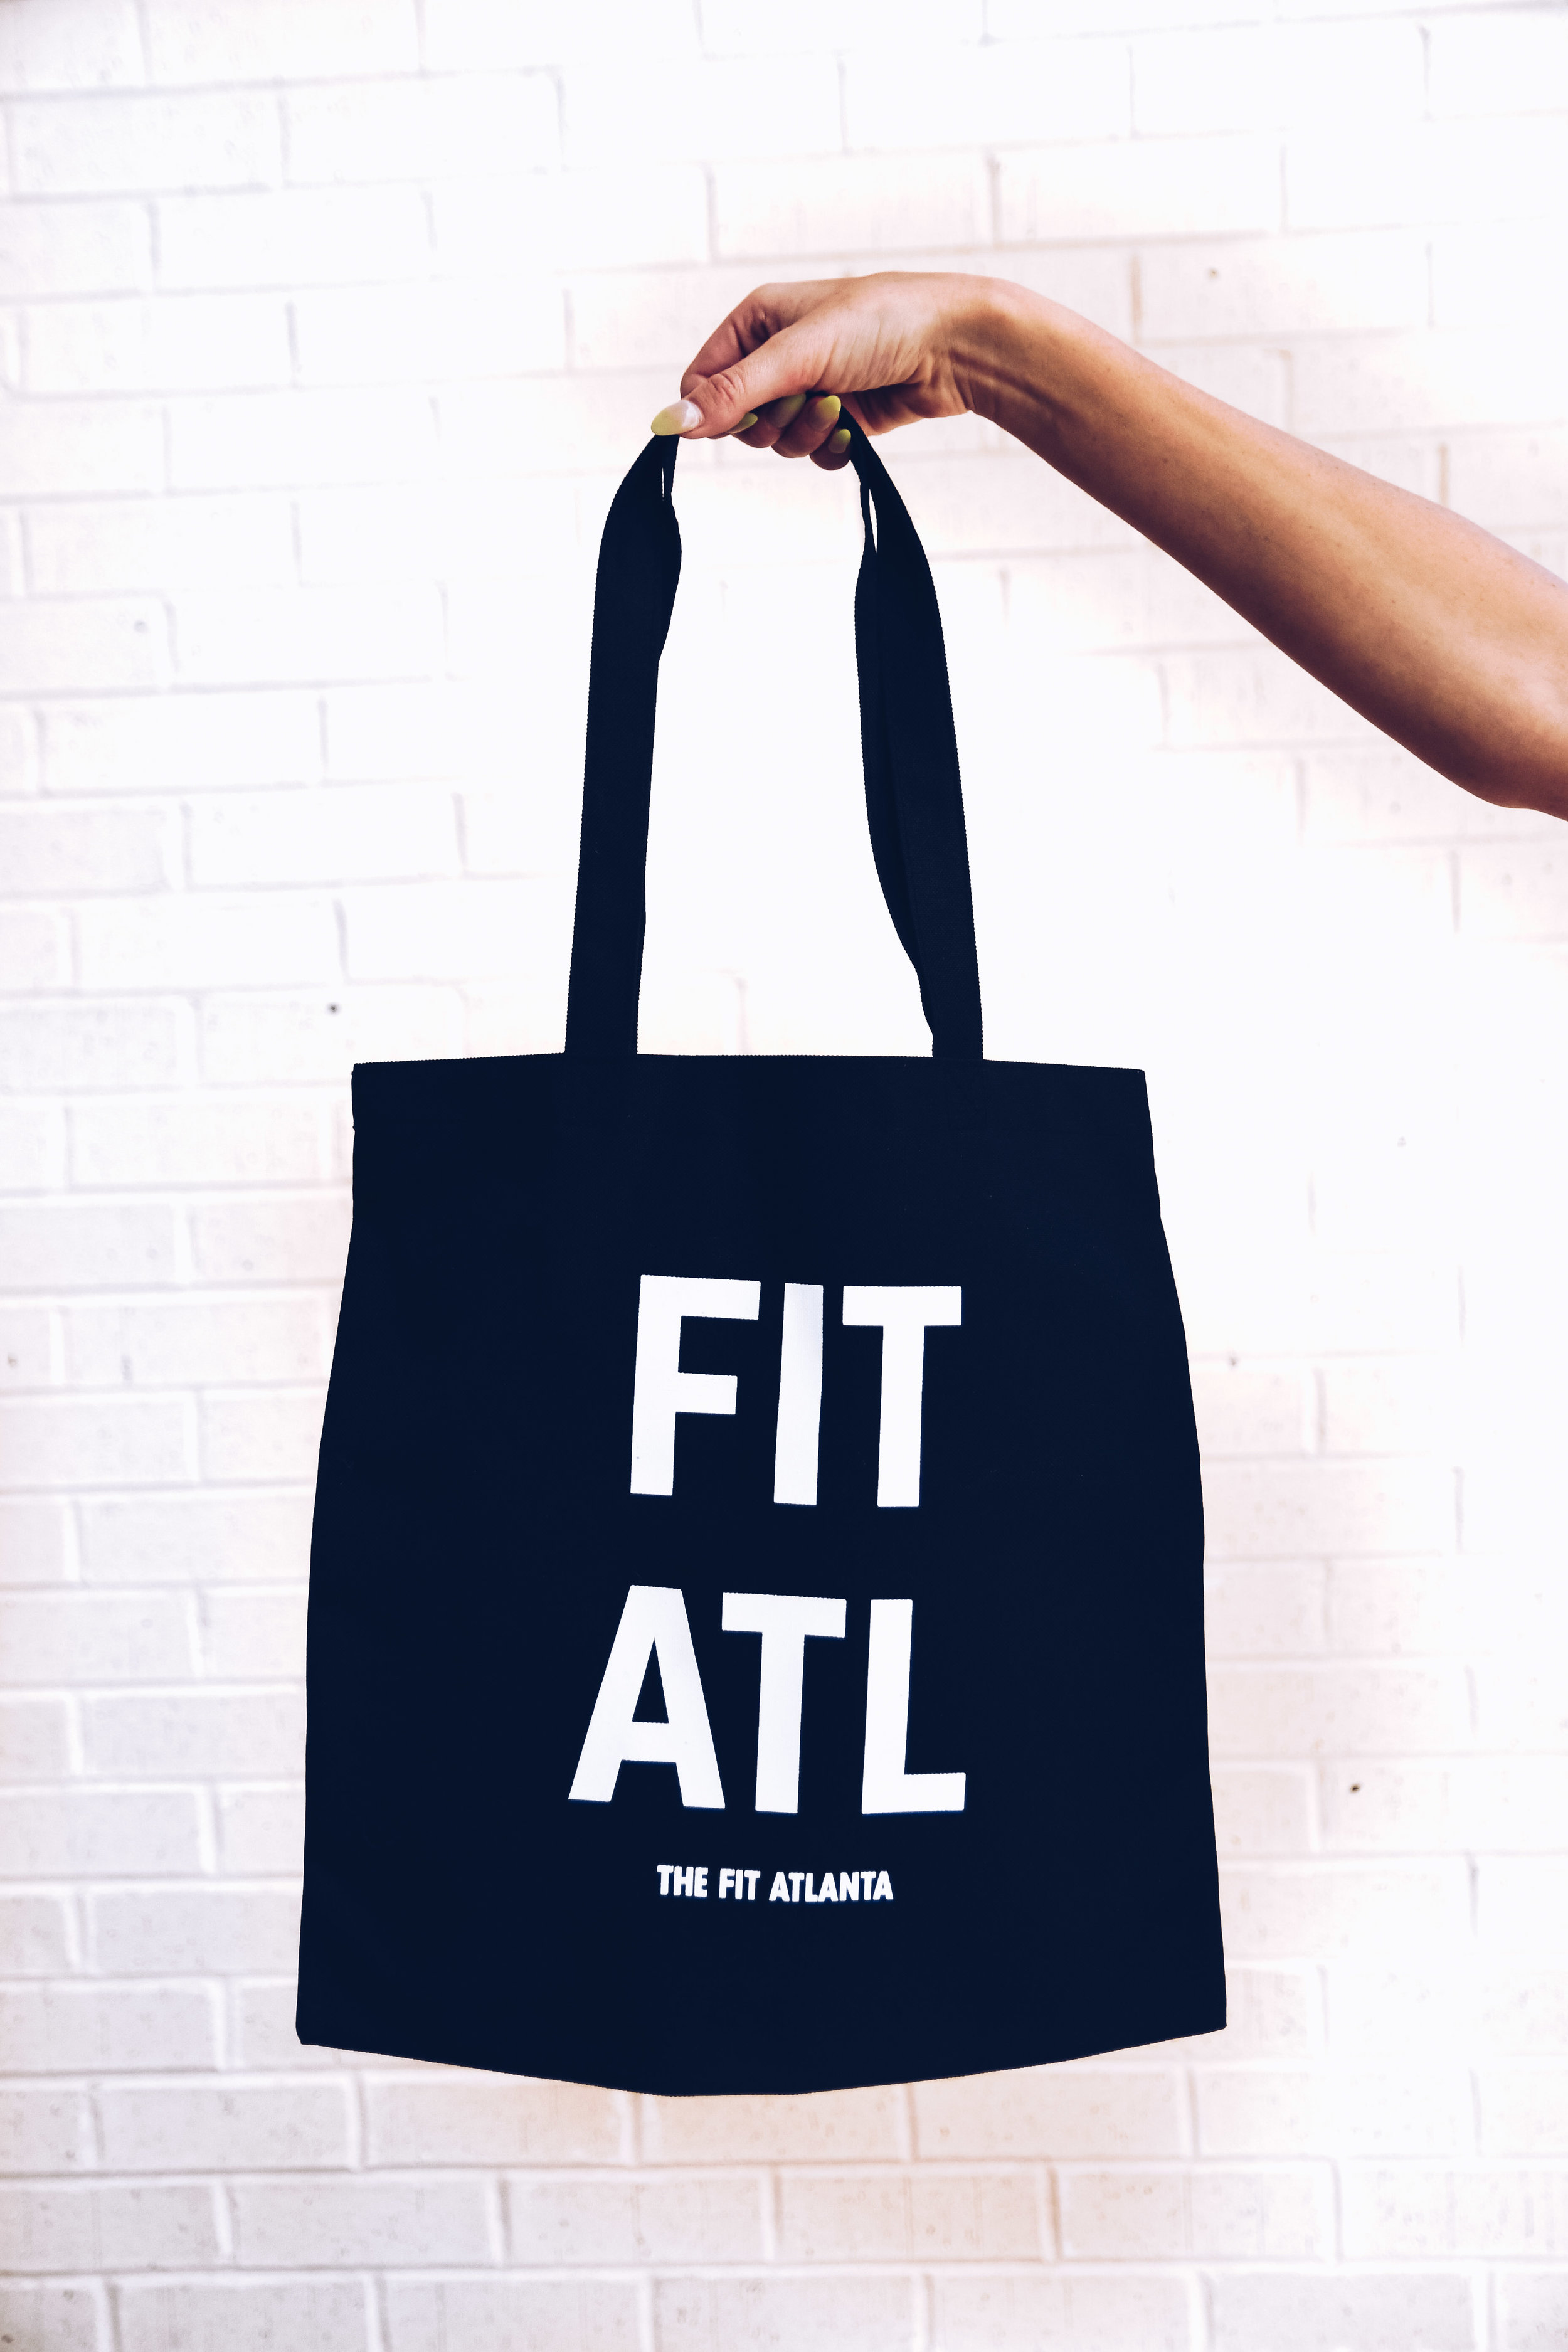 The Fit Atlanta Tote   Our canvas tote bag is exactly what you need to take to the gym, use as a reusable shopping bag, or take to the pool. Preorder yours now!